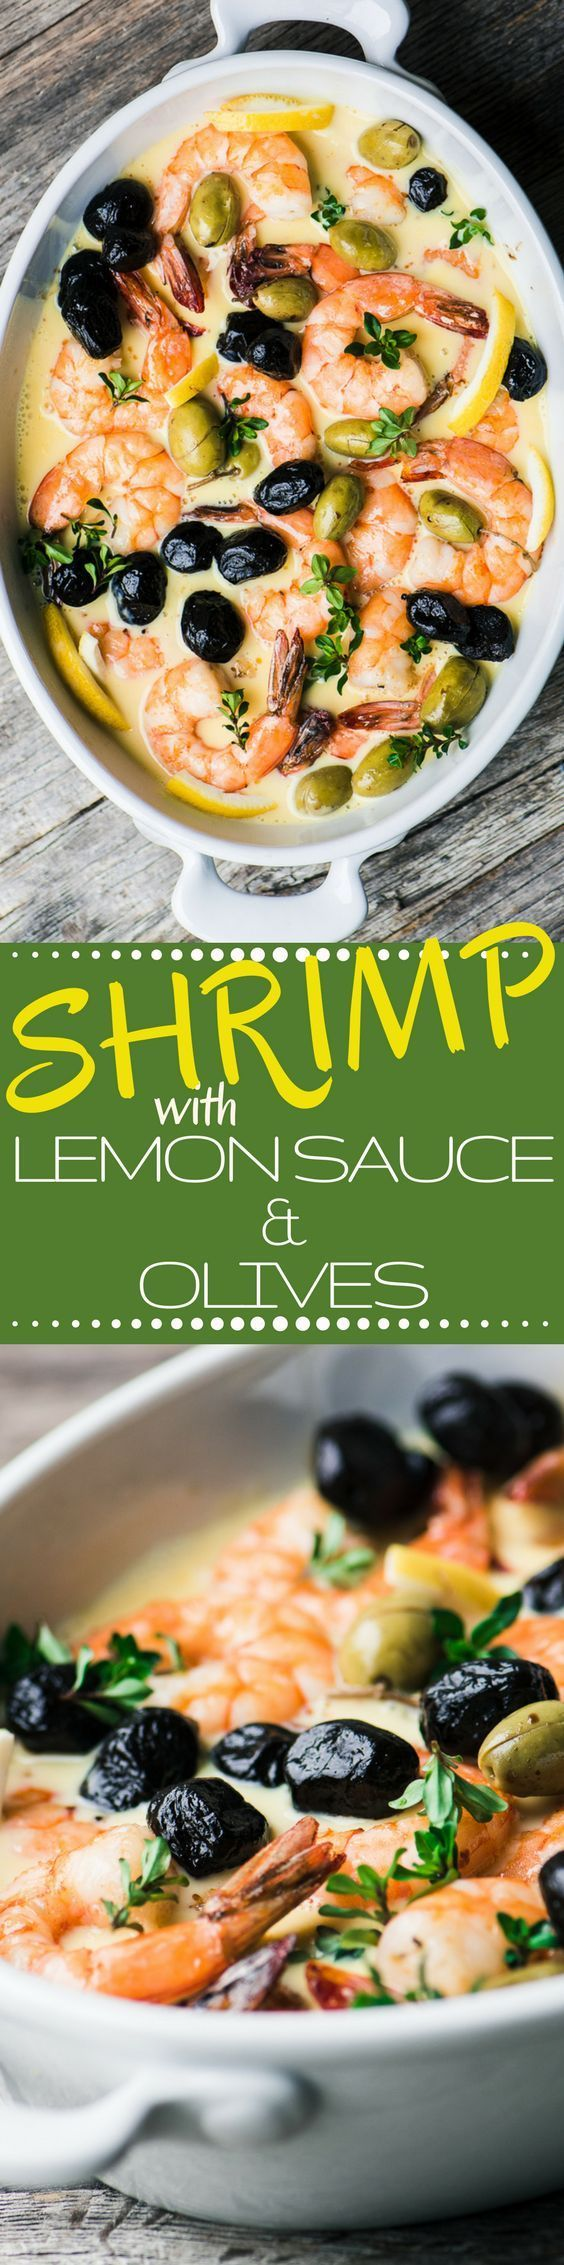 Shrimp in Lemon Sauce with Olives ~ this 30 minute meal will transport you to the Greek Isles with its silky lemon sauce and rich, briny olives. The health news on the Mediterranean Diet just keeps ge (Paleo Rezepte Fisch)